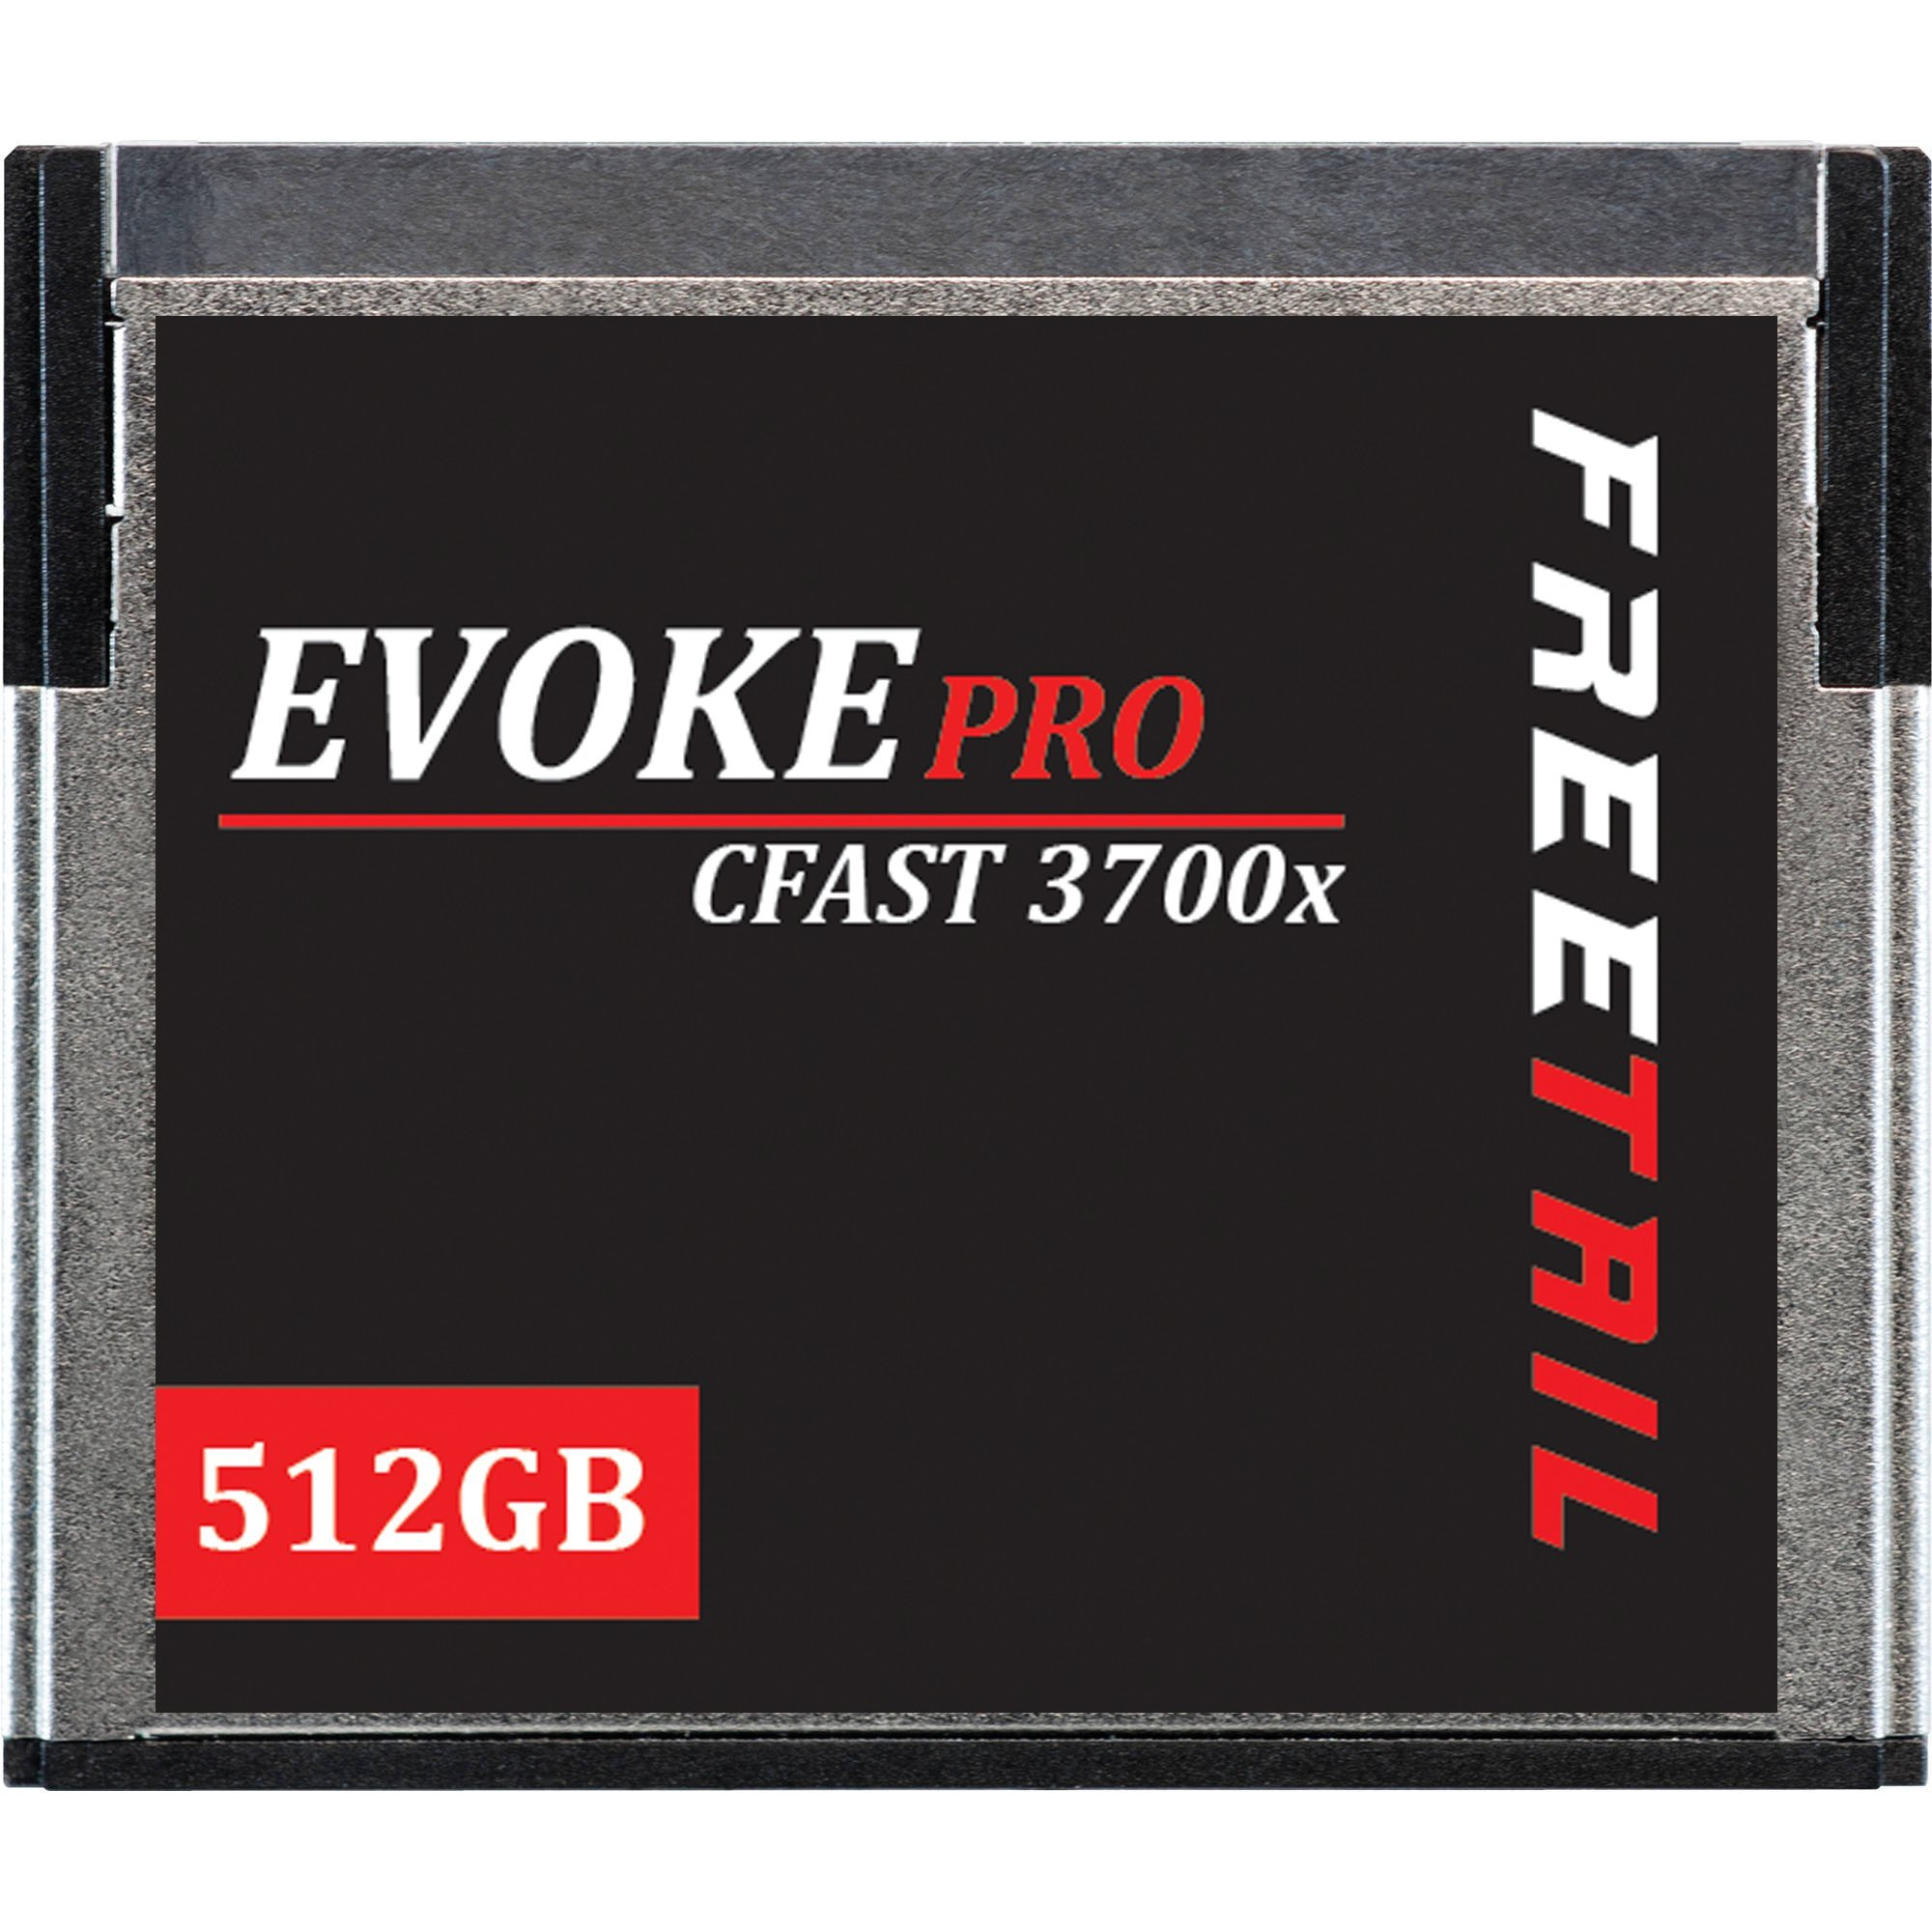 FreeTail Evoke Pro 512GB Cfast Card Speeds up to 560MB/s, VPG 130 Made for Canon, Black Magic, Hasselblad, and Phantom Devices (FTCF512A37) by FreeTail